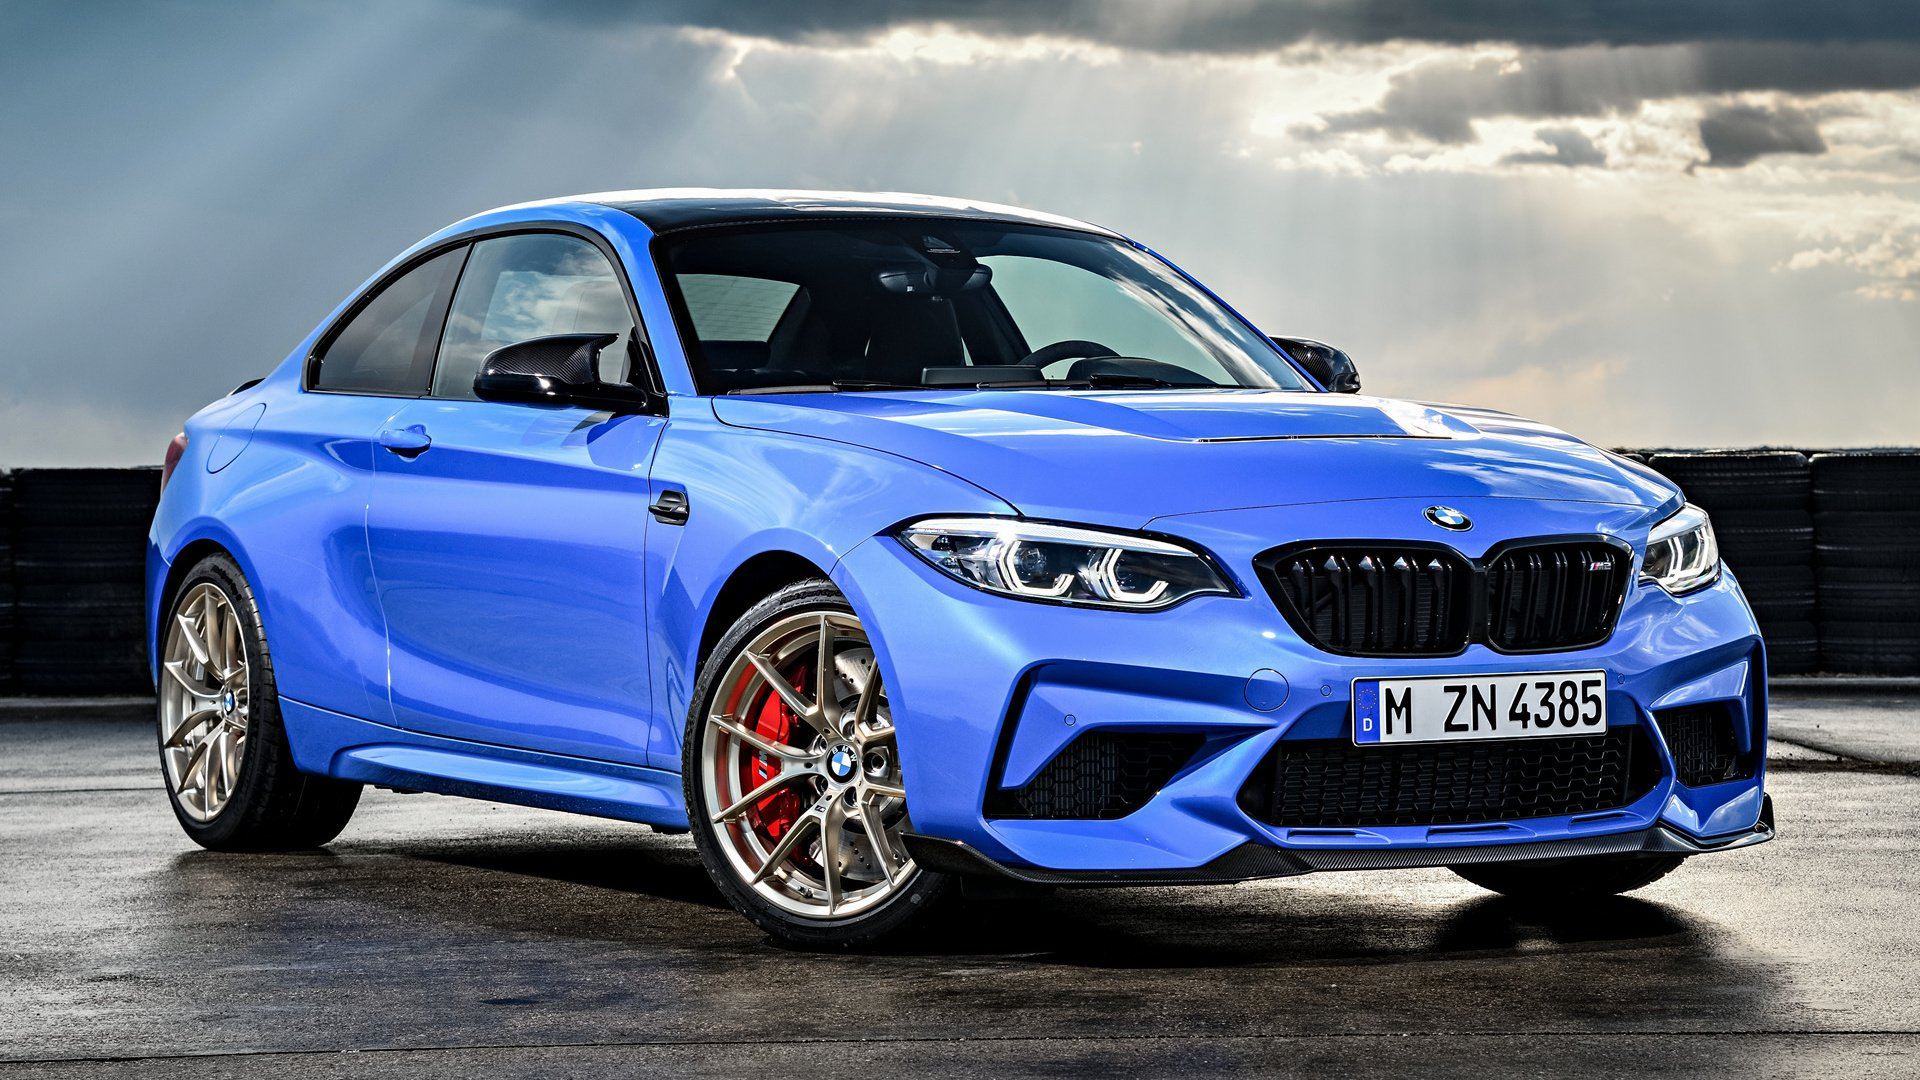 Bmw M2 Cs Beats Urus Cayman Gt4 And M850i On Hockenheim Upcoming Cars Library Up To Date